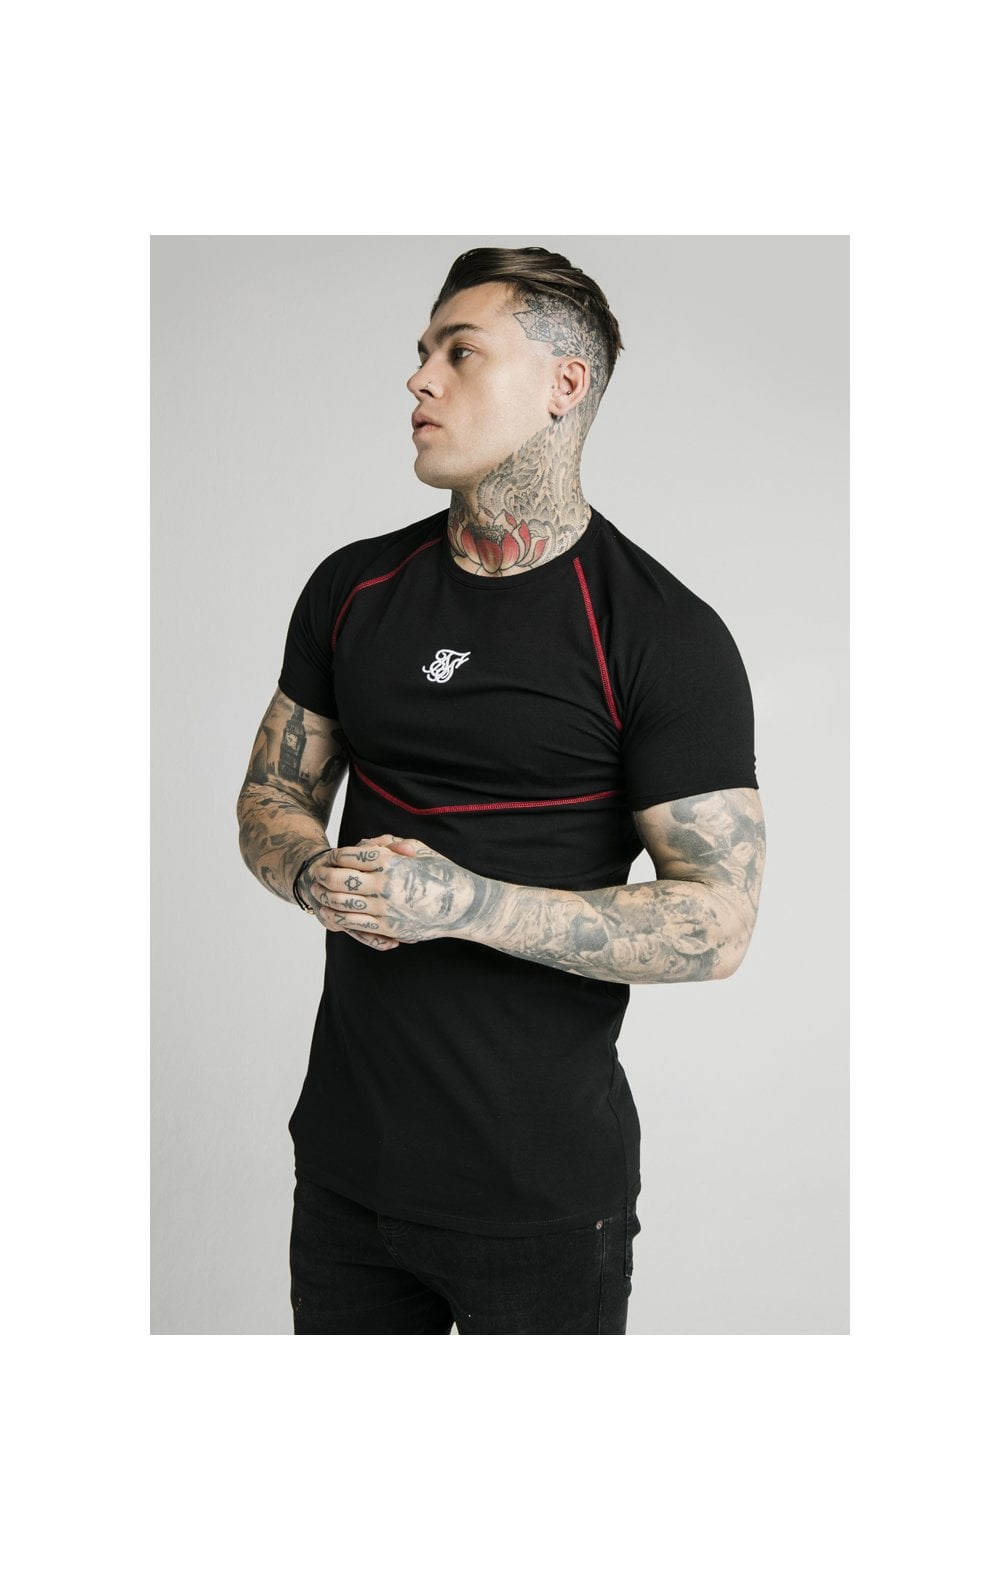 Load image into Gallery viewer, SikSilk Cover Stitch Raglan Gym Tee - Black & Red (1)